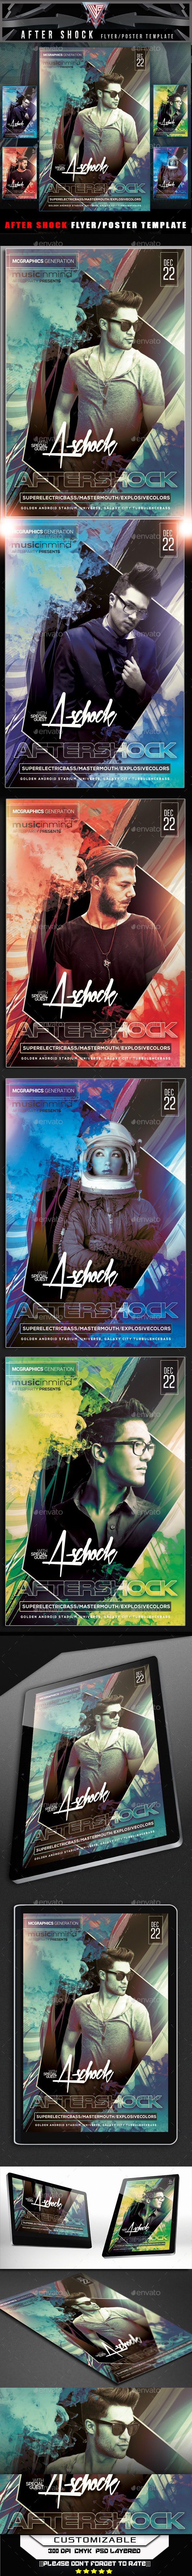 After Shock Flyer Template